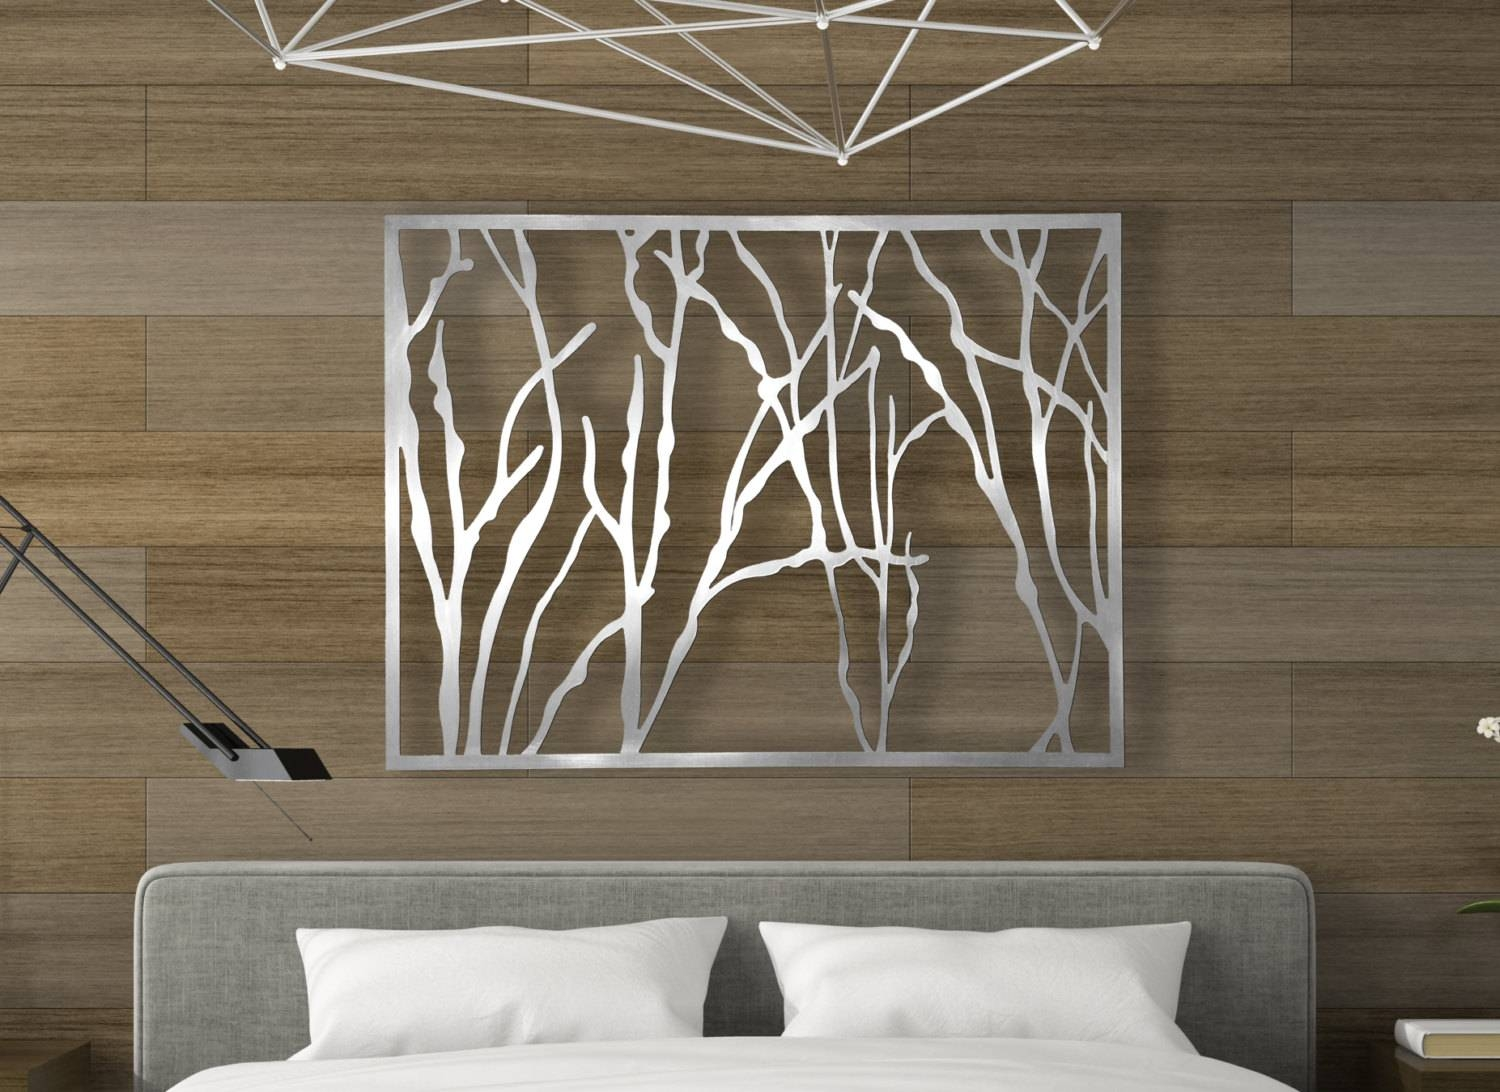 Laser Cut Metal Decorative Wall Art Panel Sculpture For Home Throughout Most Up To Date Outdoor Metal Wall Art Panels (View 9 of 20)